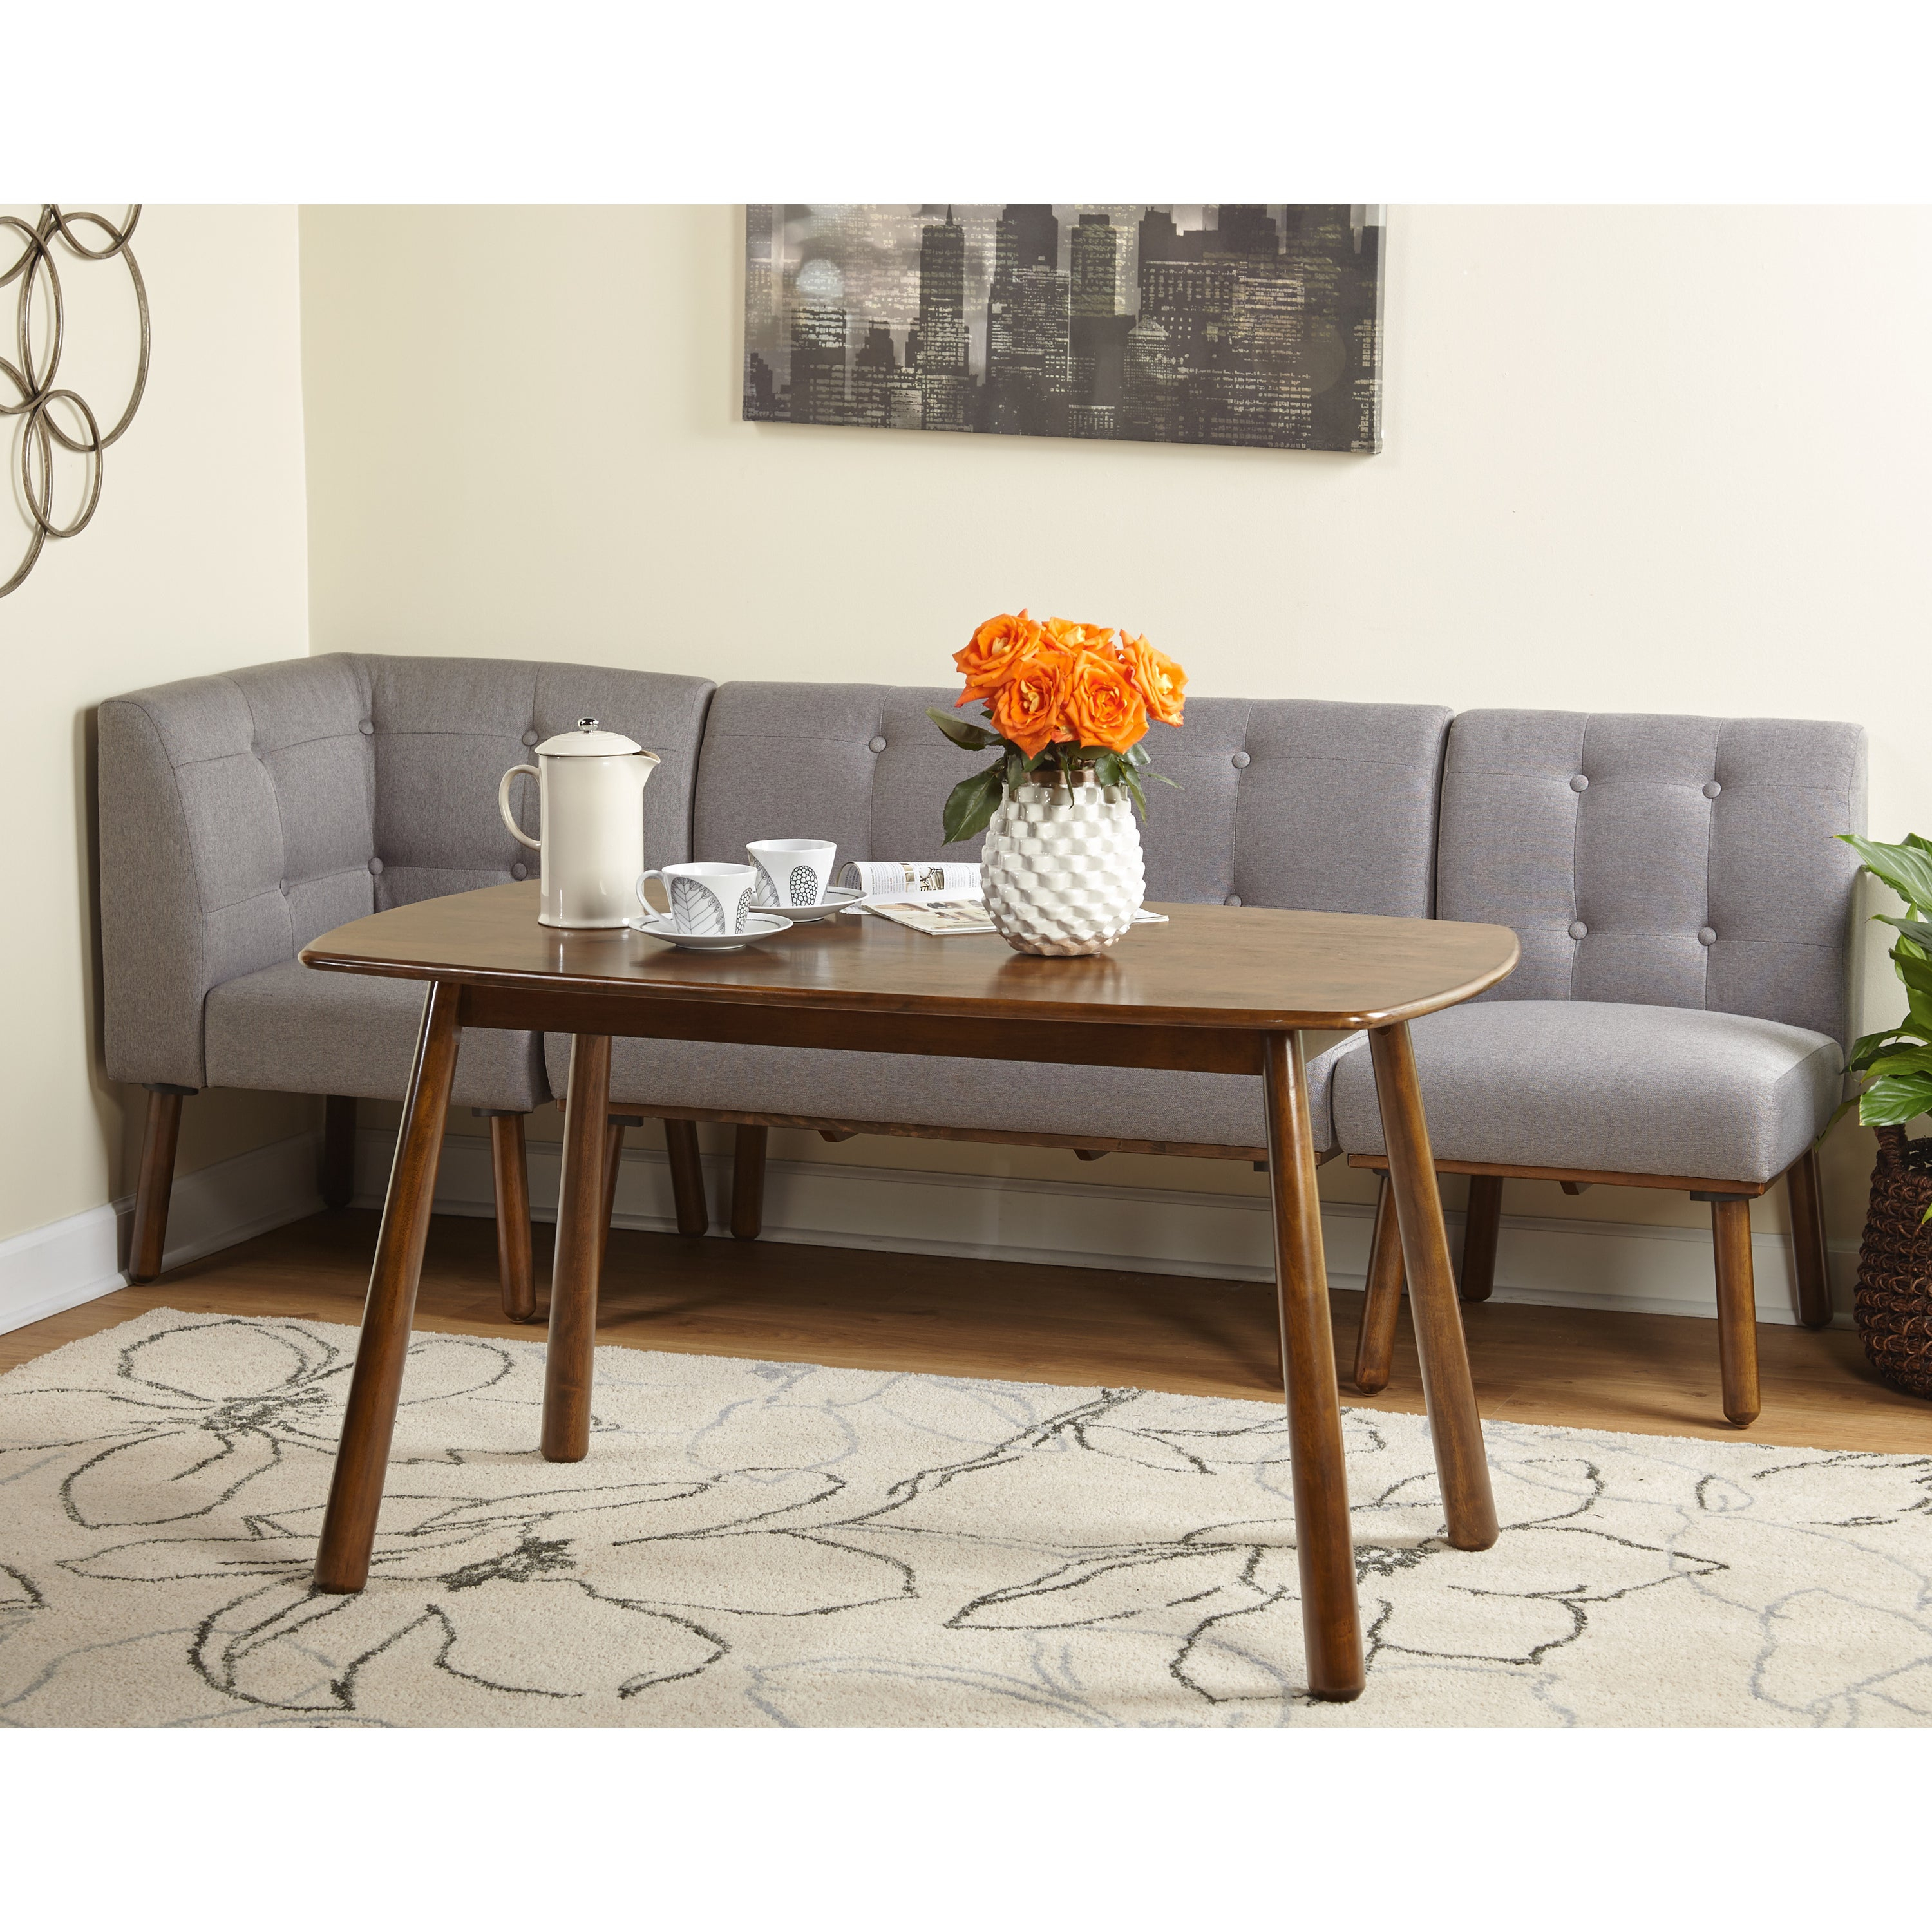 Simple Living 4 Piece Playmate Nook Dining Set In Newest Maloney 3 Piece Breakfast Nook Dining Sets (View 9 of 20)